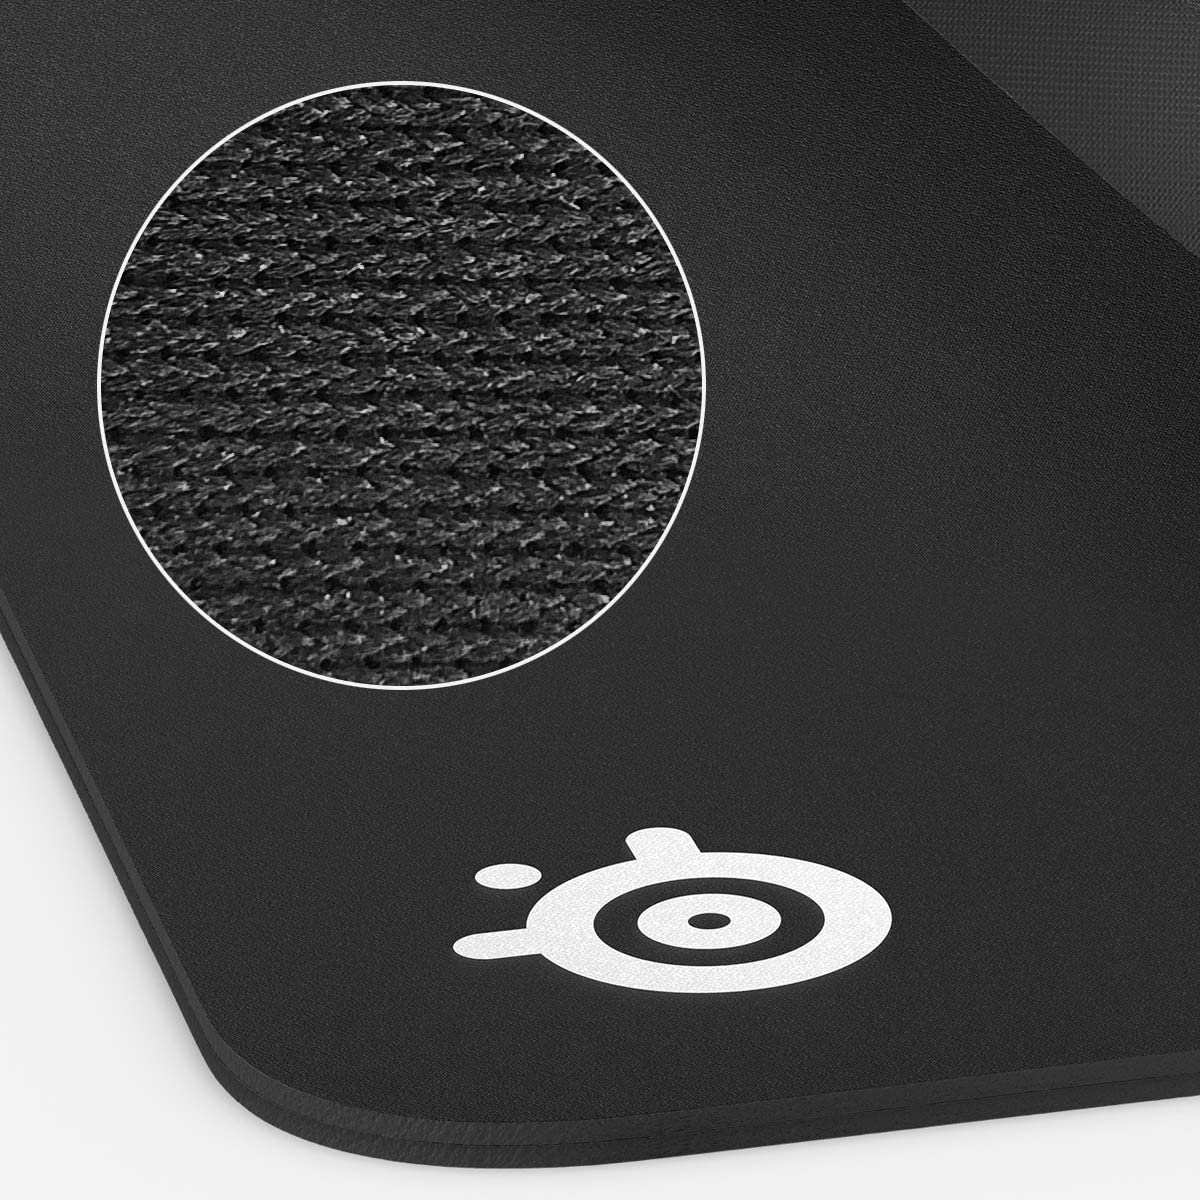 XXL Thick Cloth Maximum Control SteelSeries QcK Gaming Surface Best Selling Mouse Pad of All Time Black Sized to Cover Desks